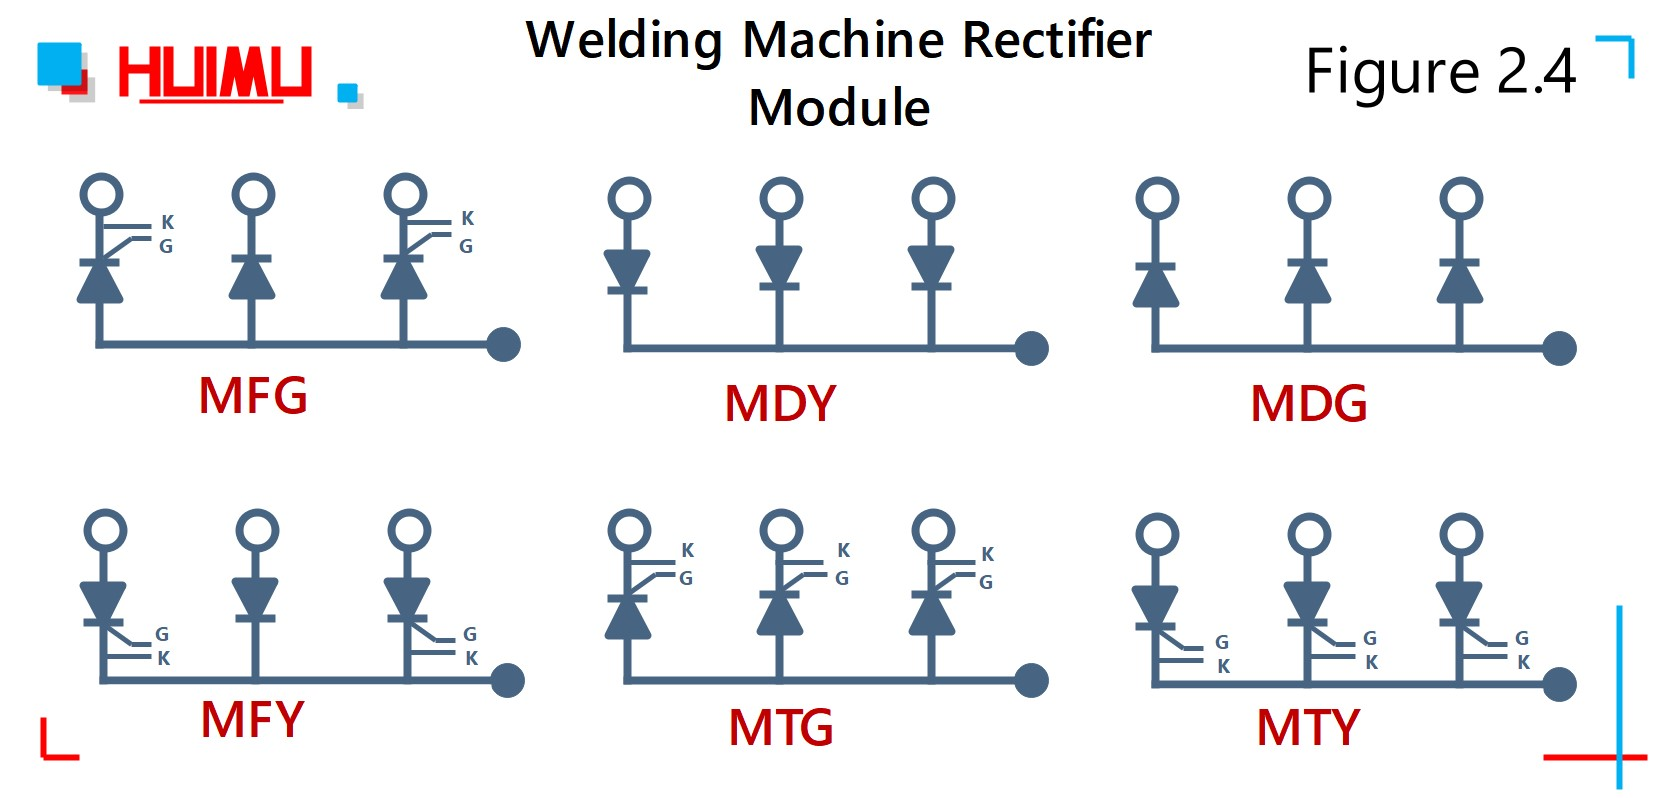 Wiring MGR mager diode bridge rectifier and power thyristor ... on plug for welder, transformer for welder, motor for welder, socket for welder, grounding for welder, coils for welder, generator for welder, starter for welder, fuel for welder,